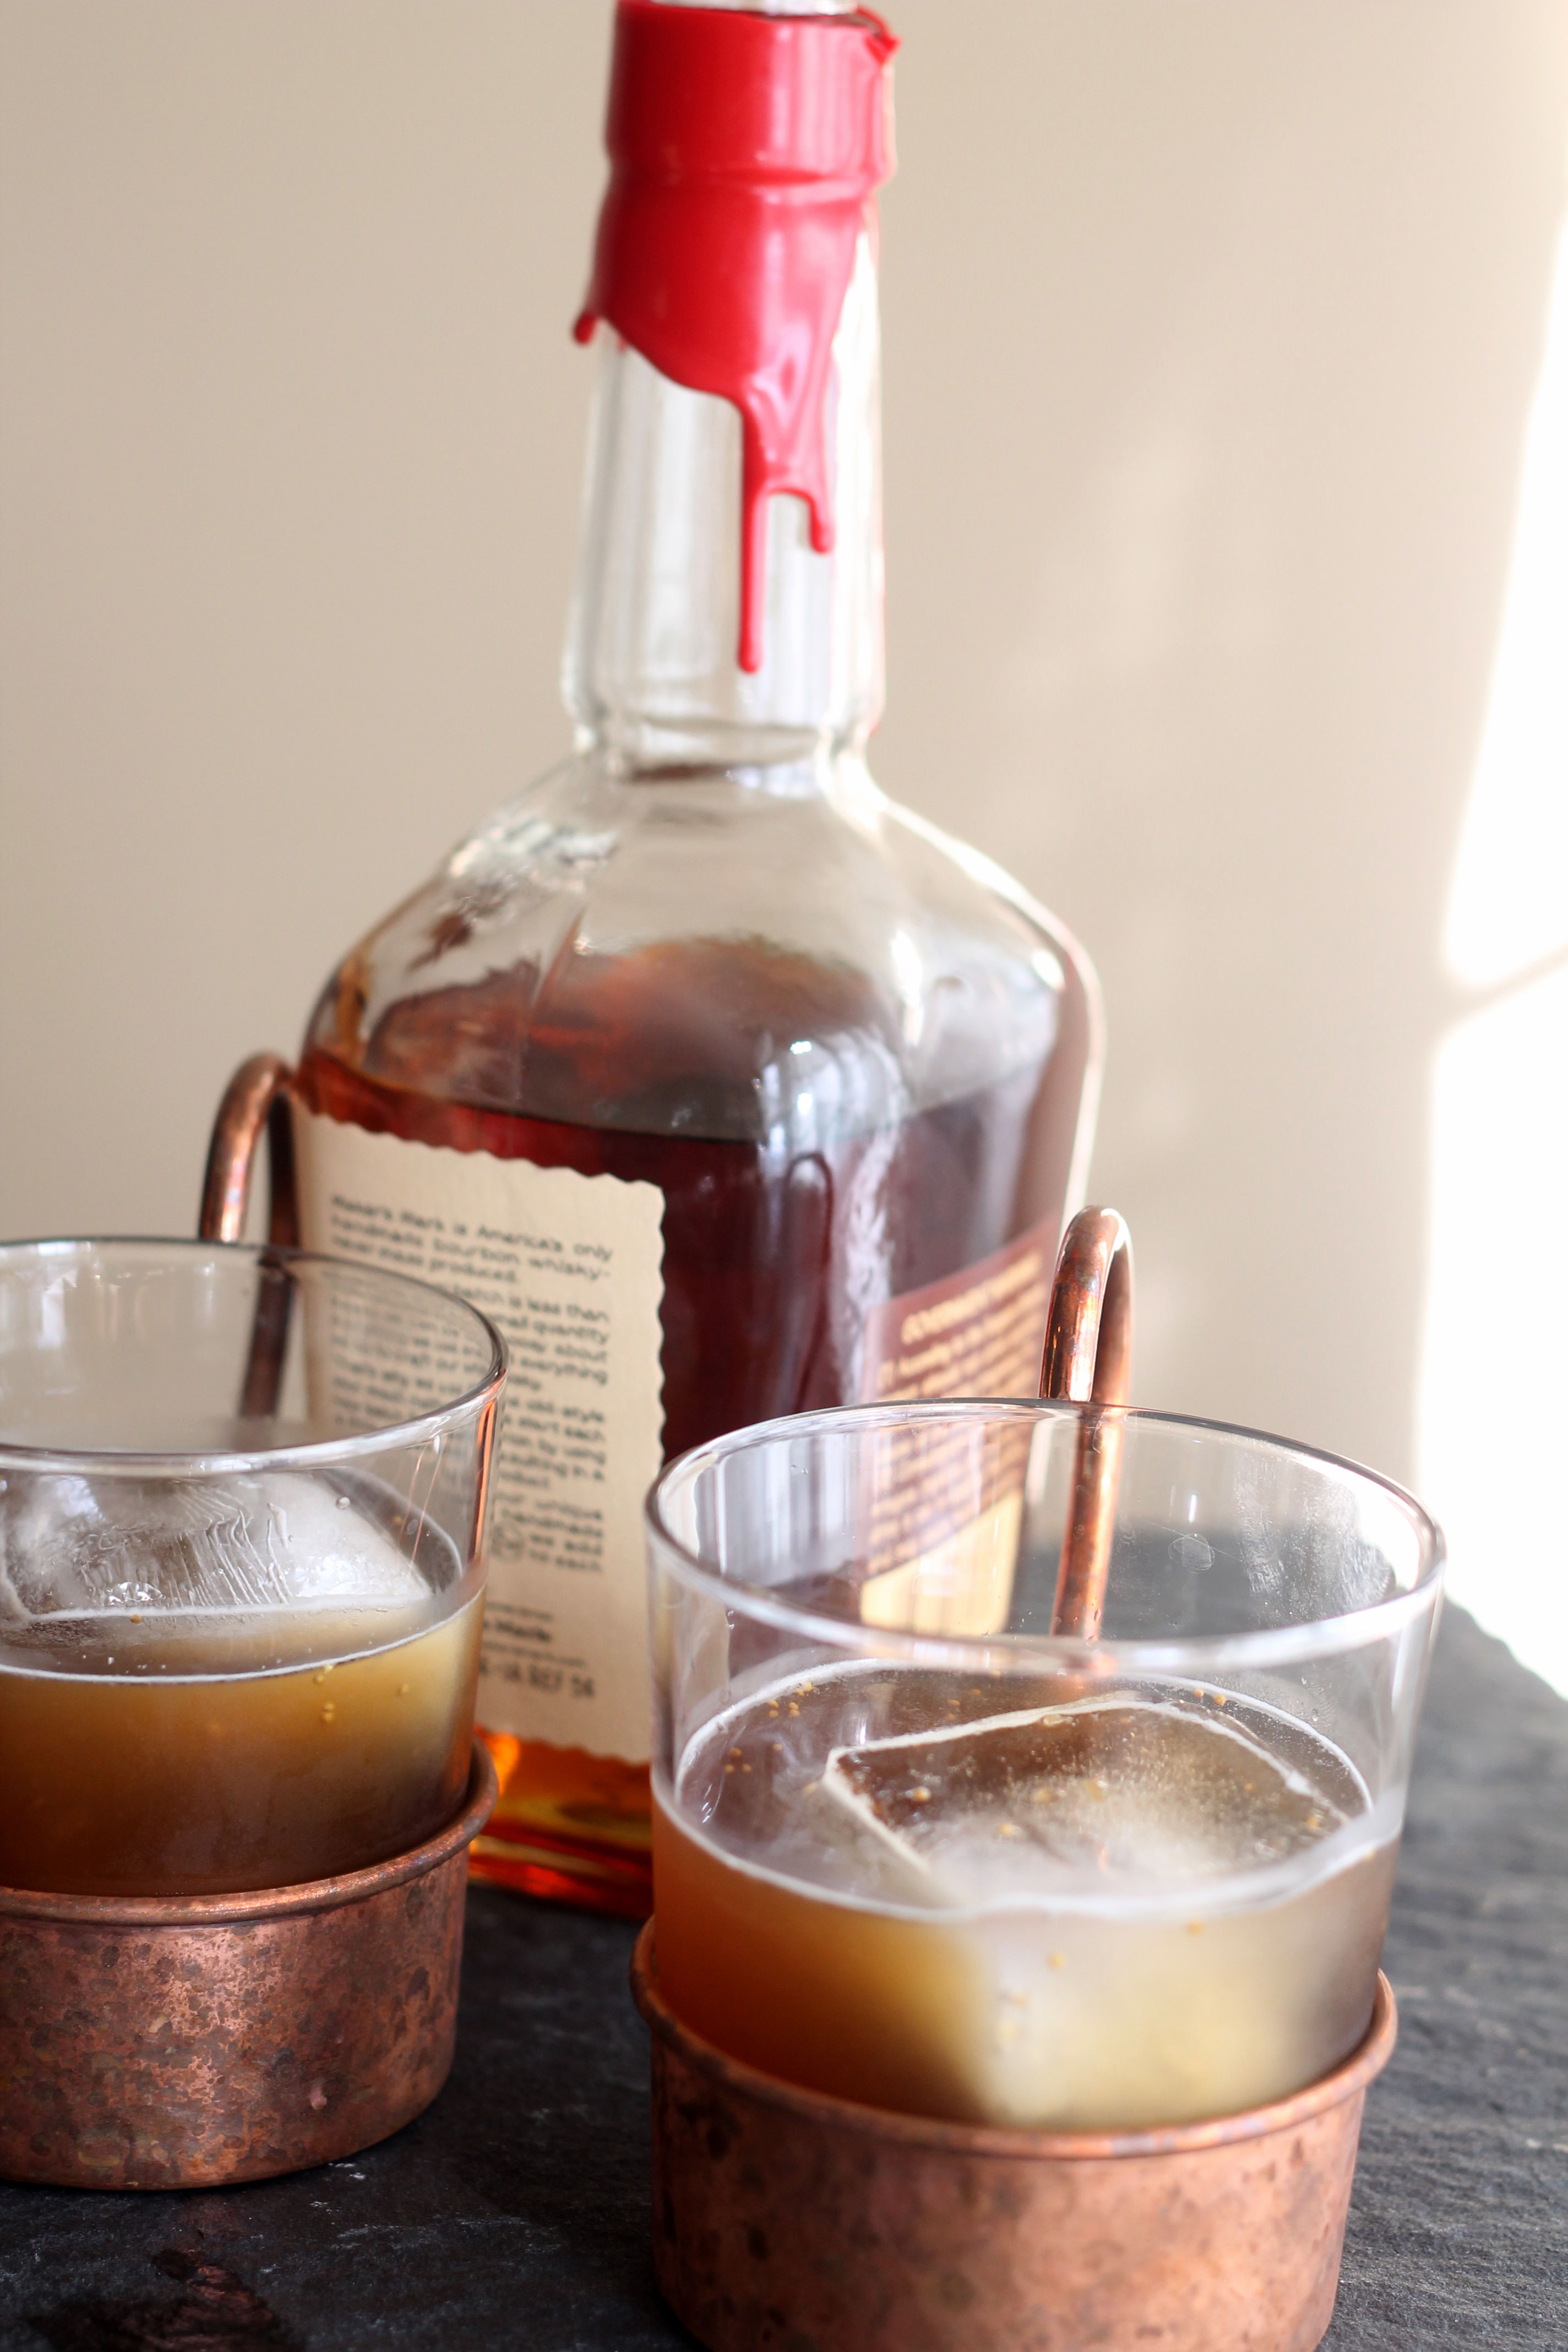 A sweet Bourbon cocktail that will have you wanting more!